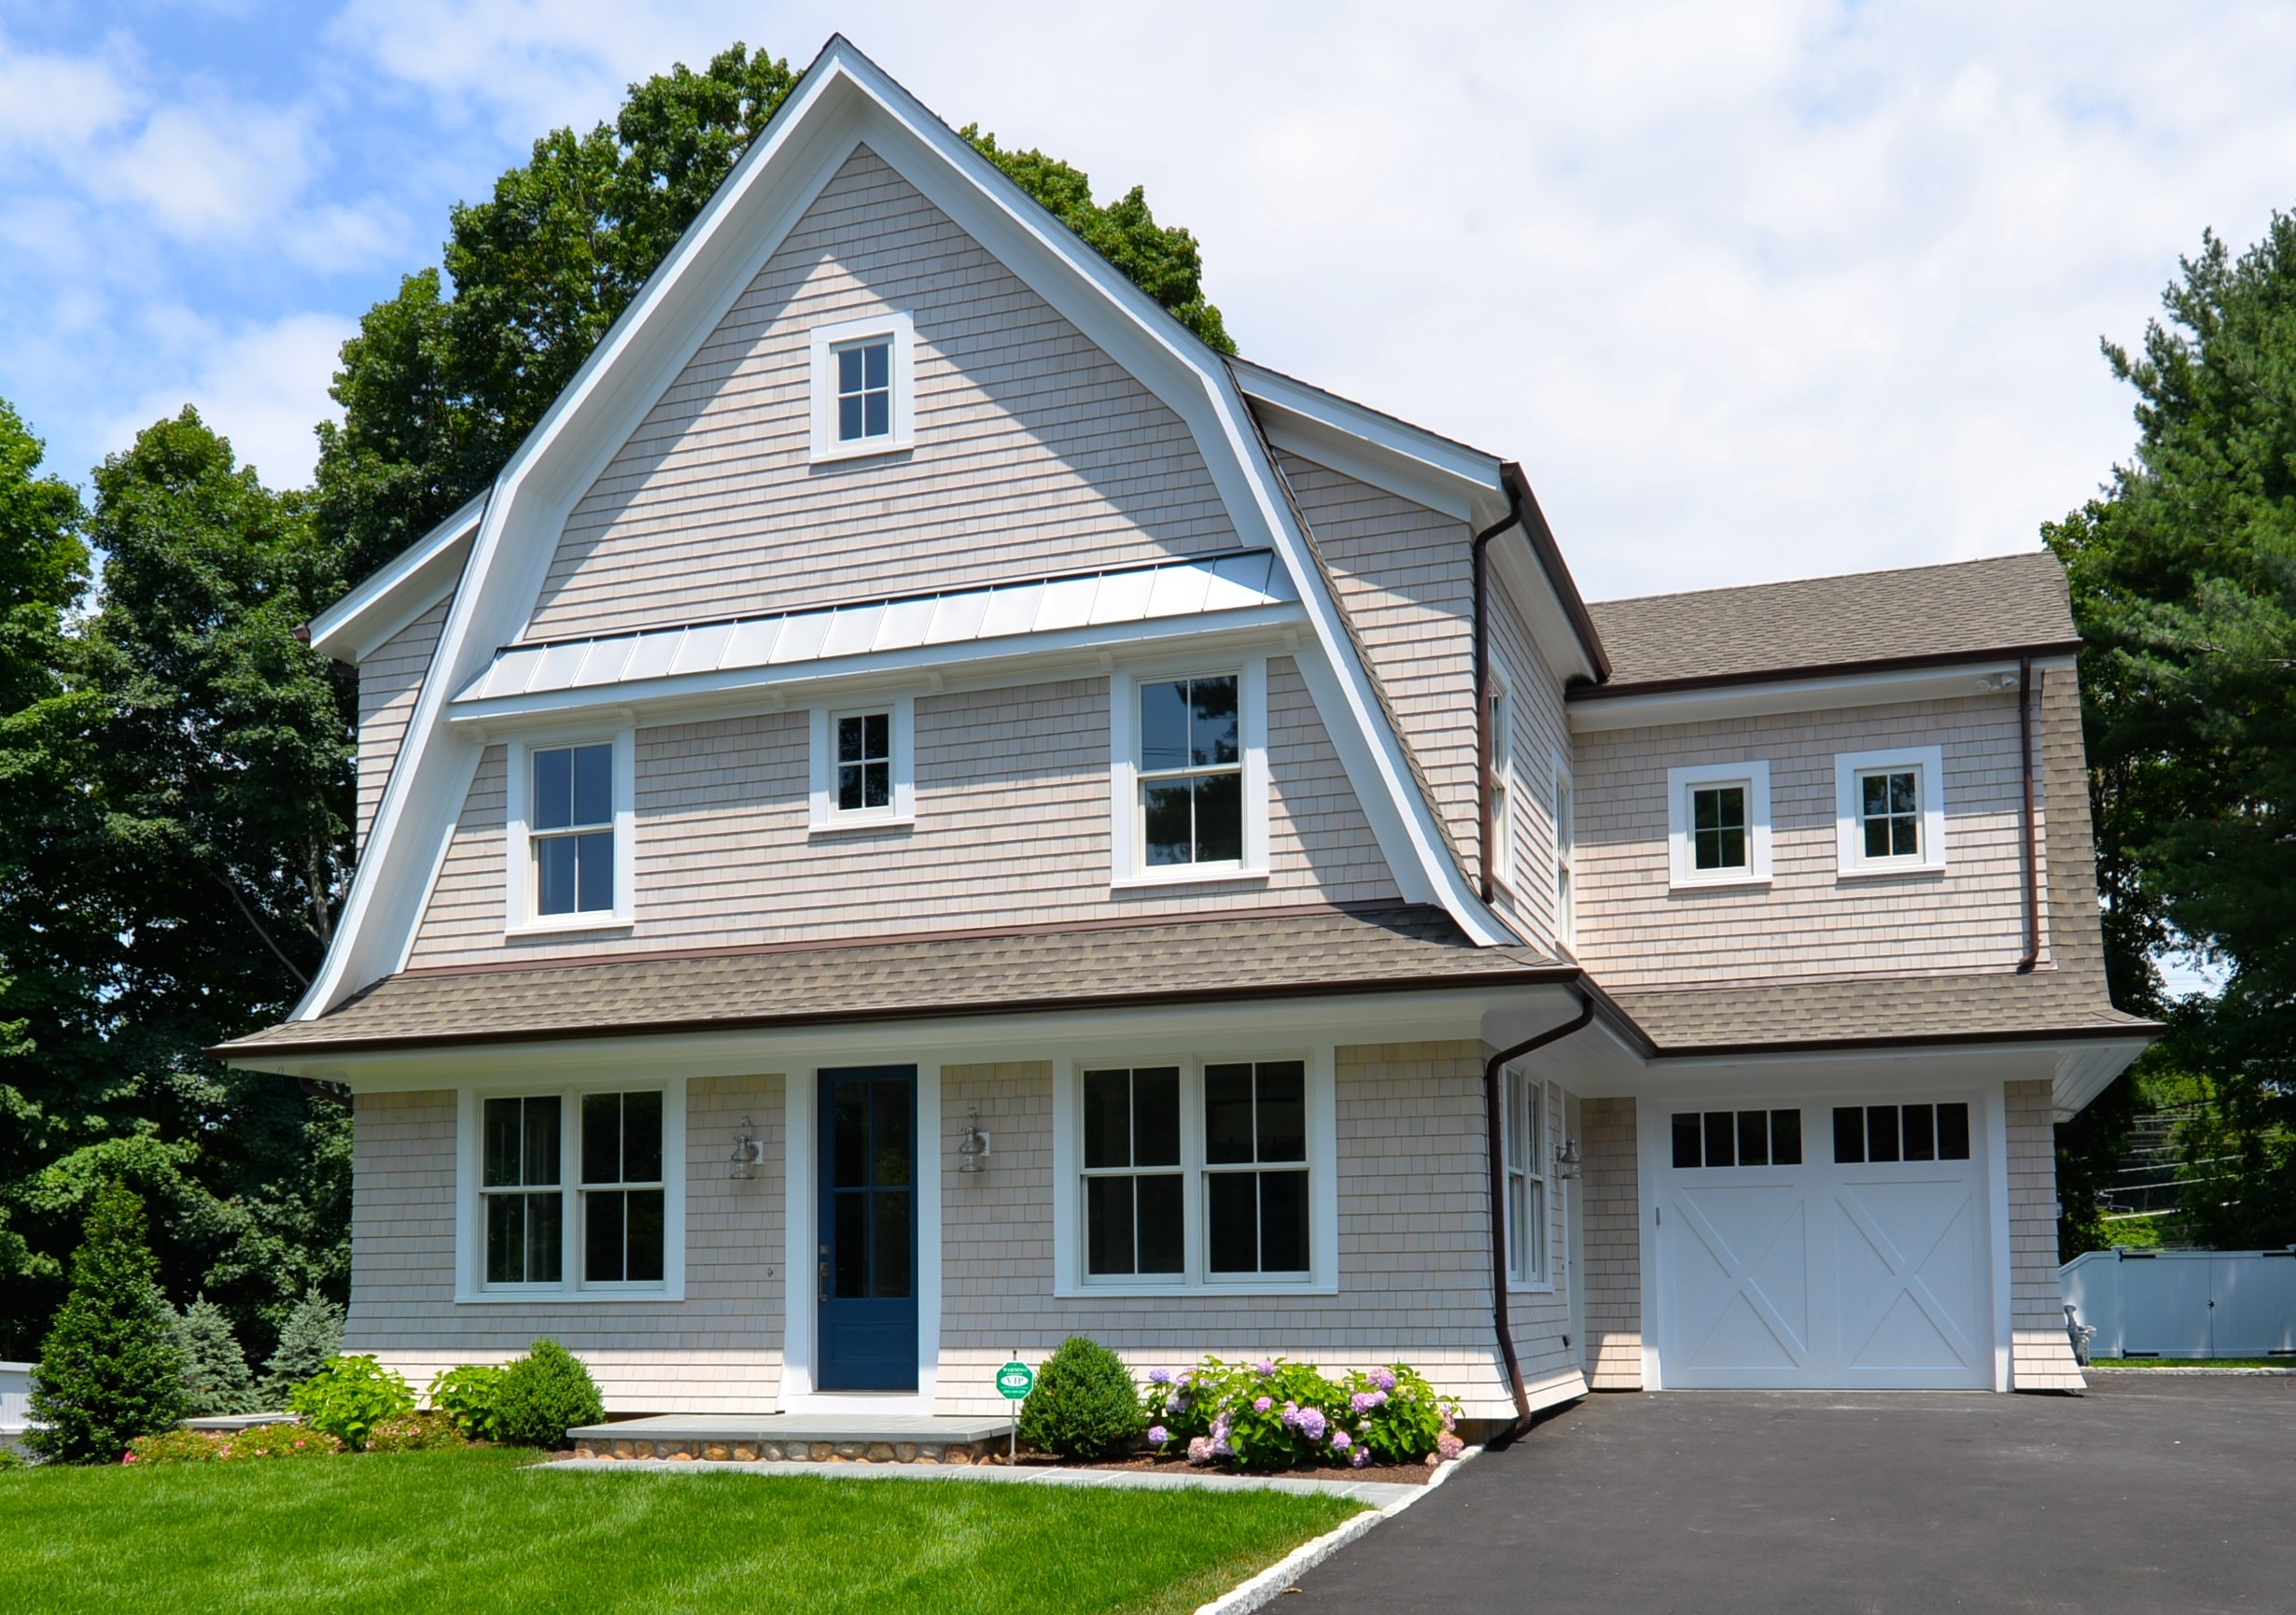 Single Family Home for Sale at 4 Vani Court Westport, Connecticut, 06880 United States